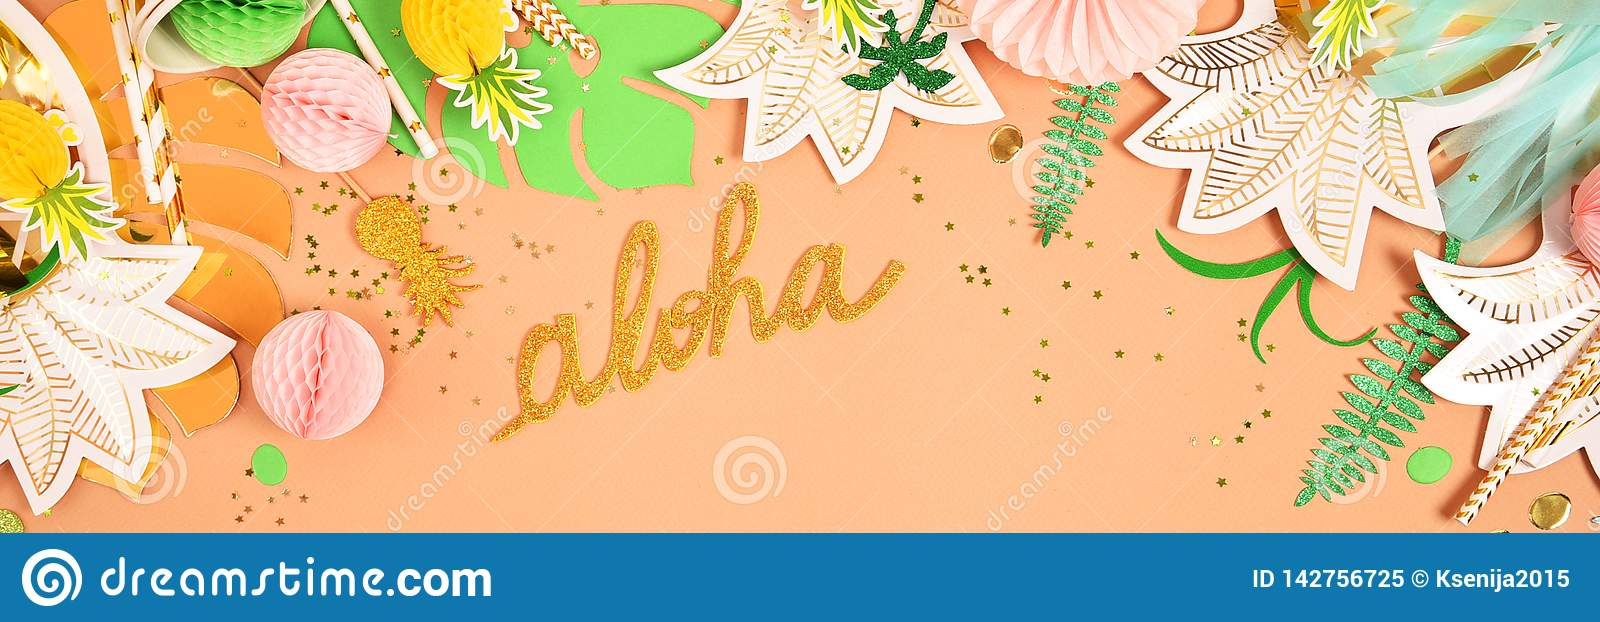 Christmas In Hawaii Party.Festive Background Tropical Theme Summer Hawaii Party